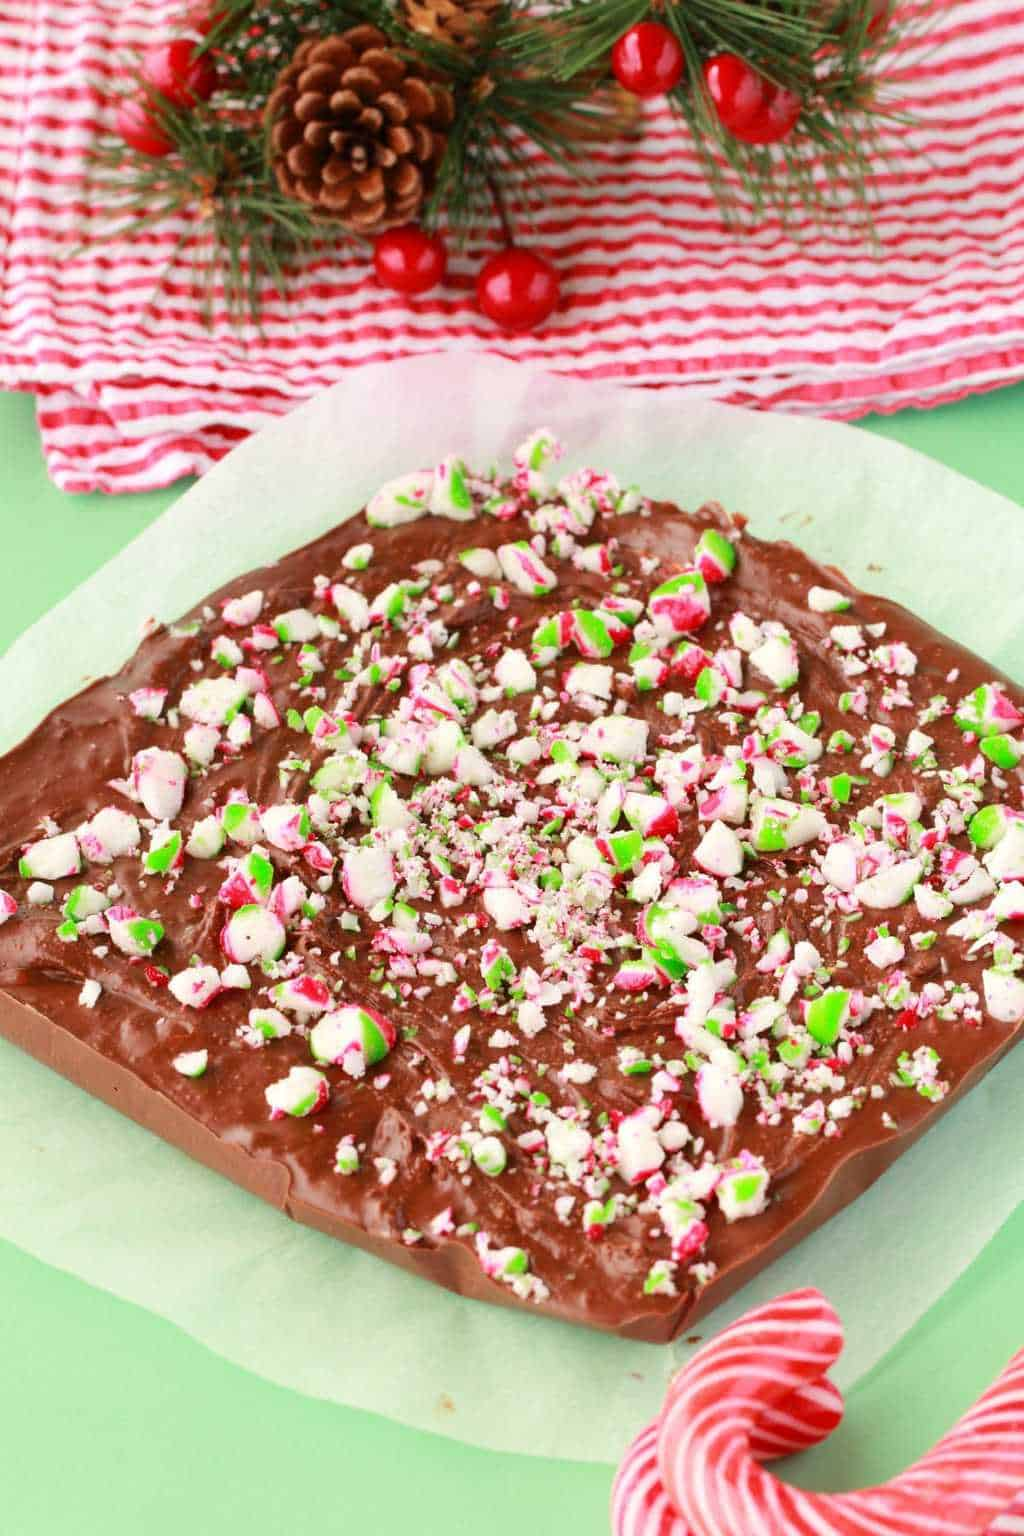 Super easy 3-ingredient vegan chocolate peppermint fudge topped with crushed peppermint candy canes. Creamy and crazy delicious and ideal for the holidays! #vegan #lovingitvegan #peppermintfudge #fudge #vegandesserts #glutenfree #dairyfree | lovingitvegan.com